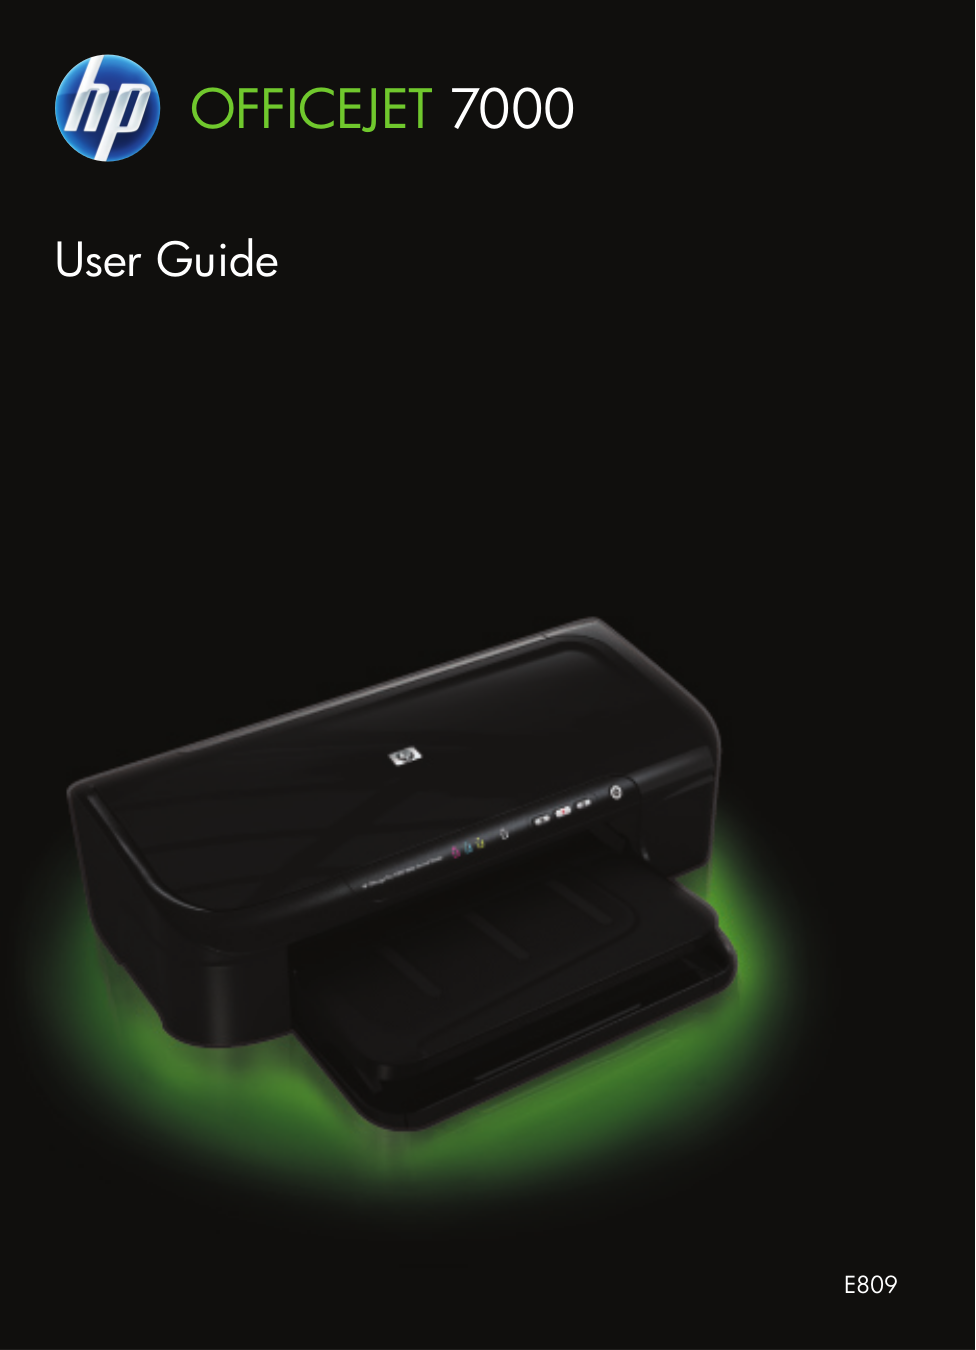 pdf for HP Printer Officejet 7000 manual